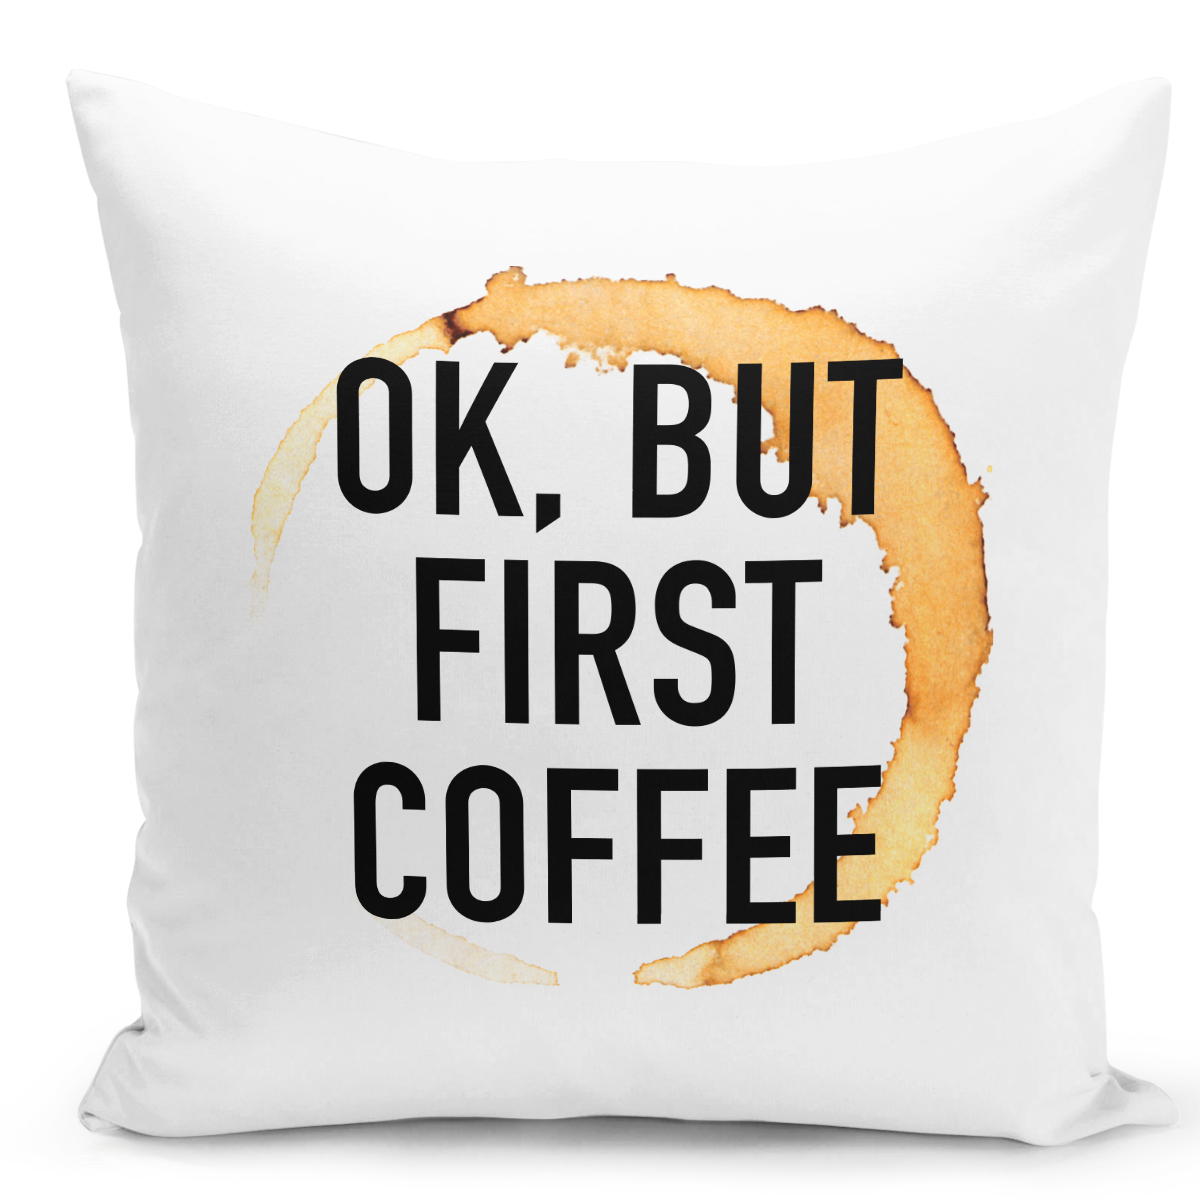 White-Throw-Pillow-Ok-But-First-Coffee-Stain-Bedroom-Pillow---High-Quality-White-16-x-16-inch-Square-Home-Office-Decor-Accent-Pillow-